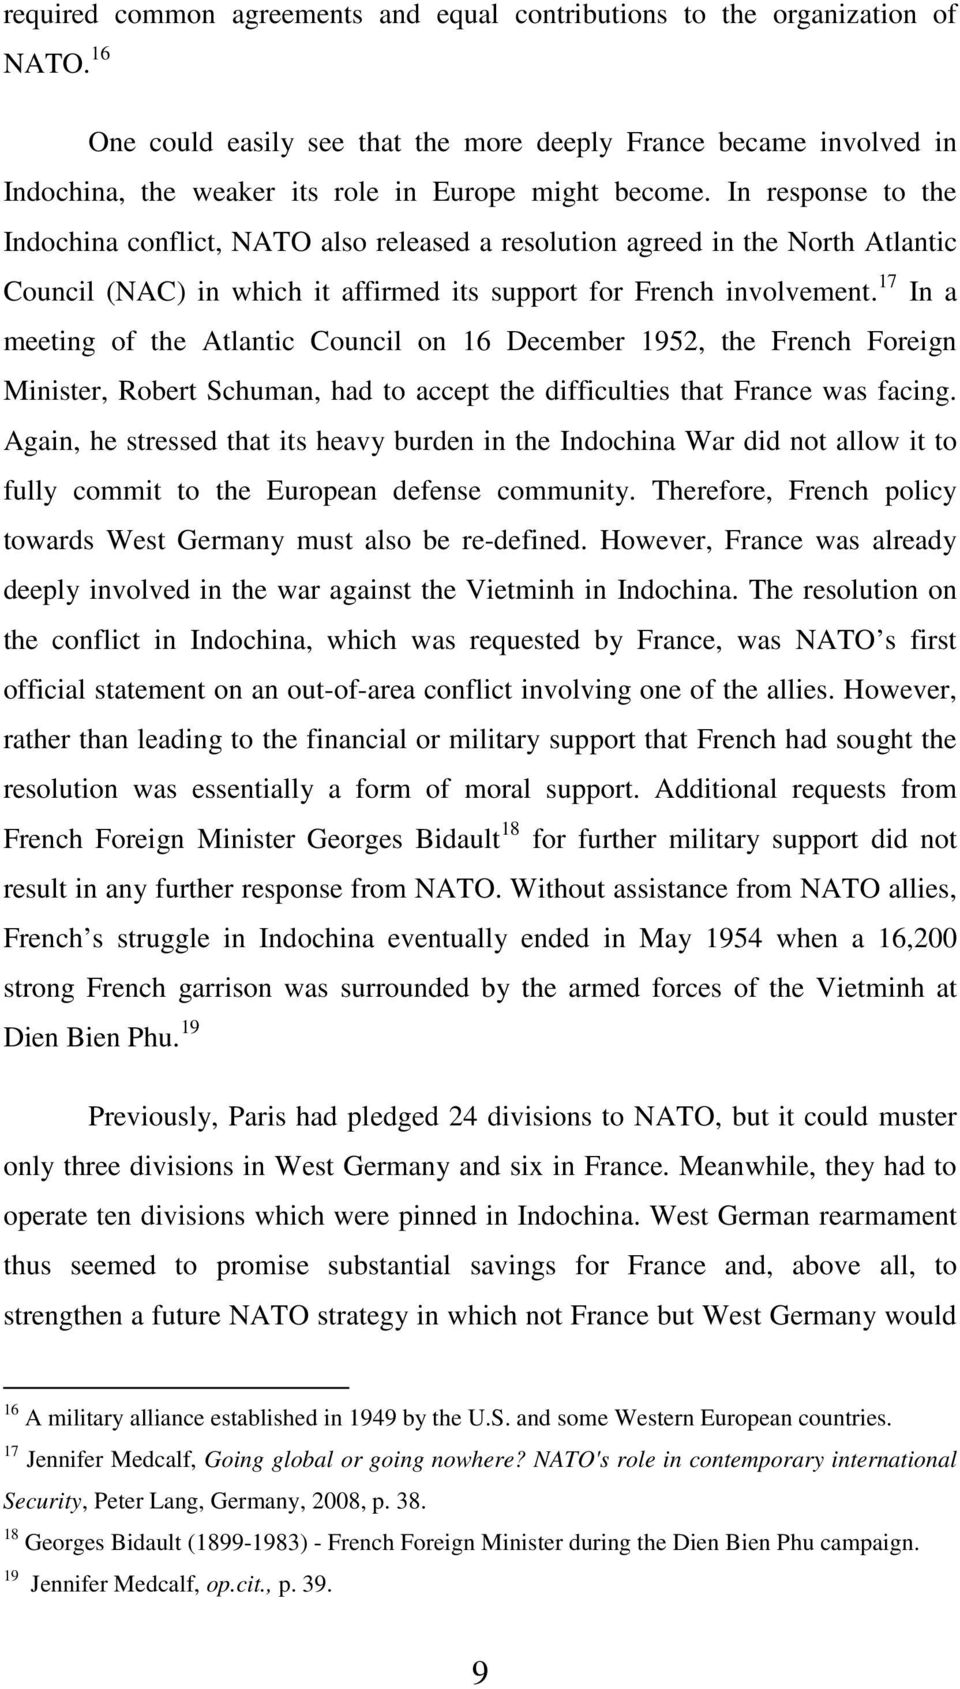 In response to the Indochina conflict, NATO also released a resolution agreed in the North Atlantic Council (NAC) in which it affirmed its support for French involvement.